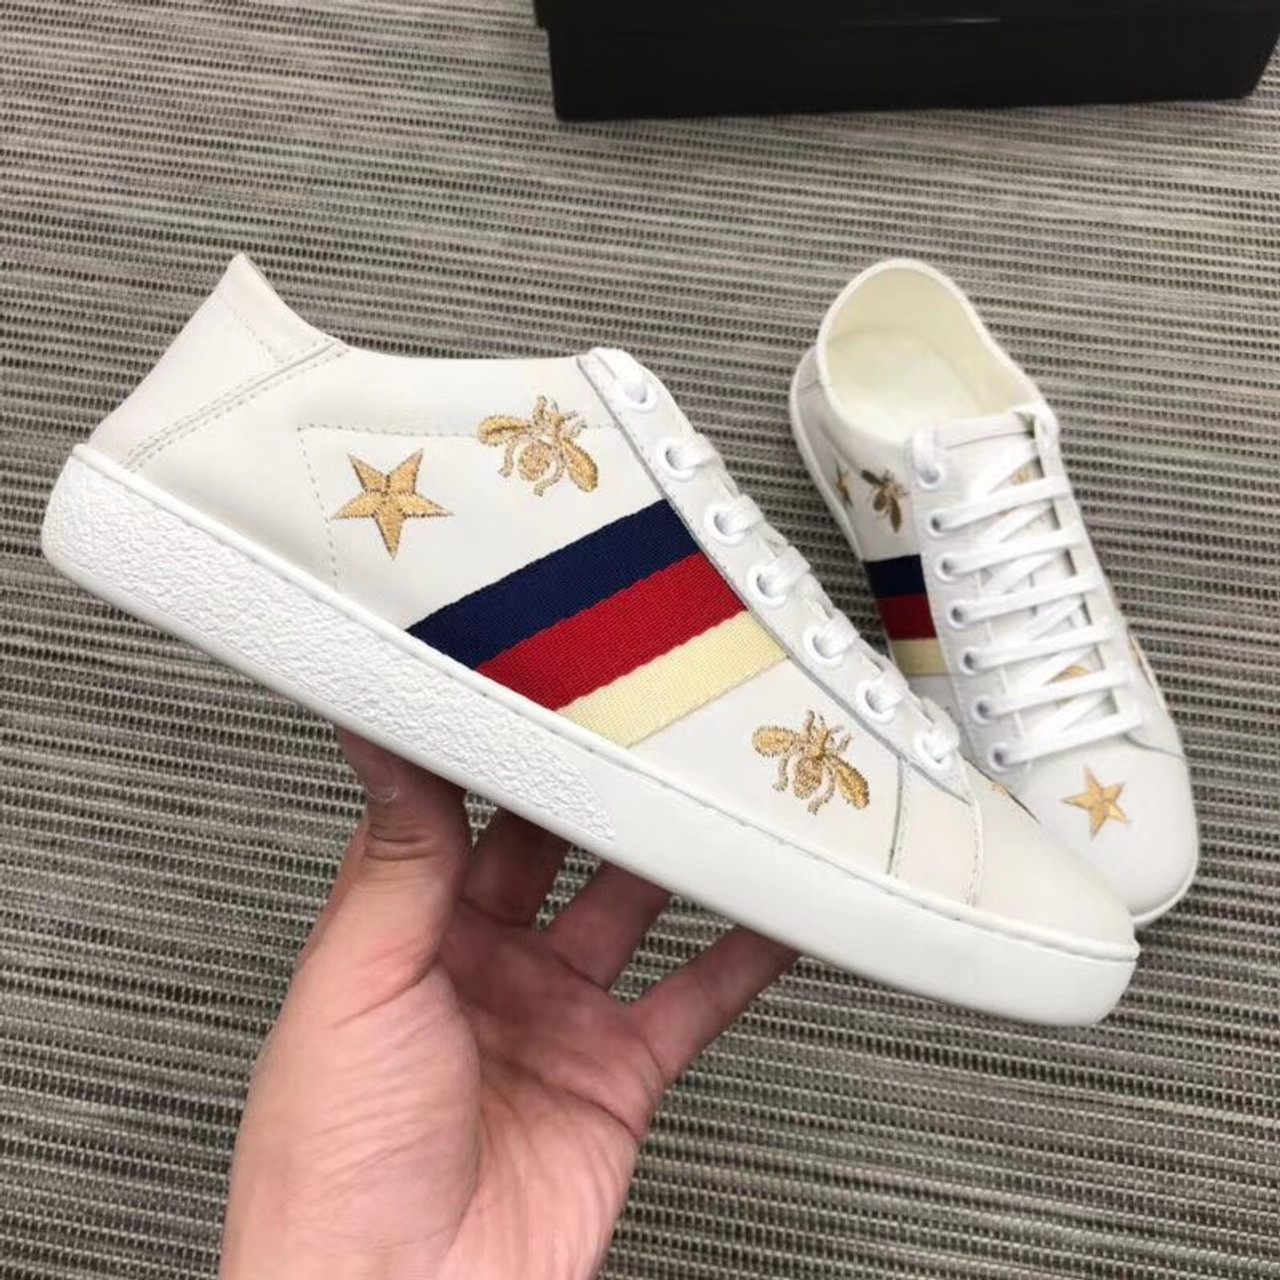 a3c7591ab44 Ace Embroidered Sneaker with Bees and Stars 498205 Calfskin Leather  Spring Summer 2018 Collection